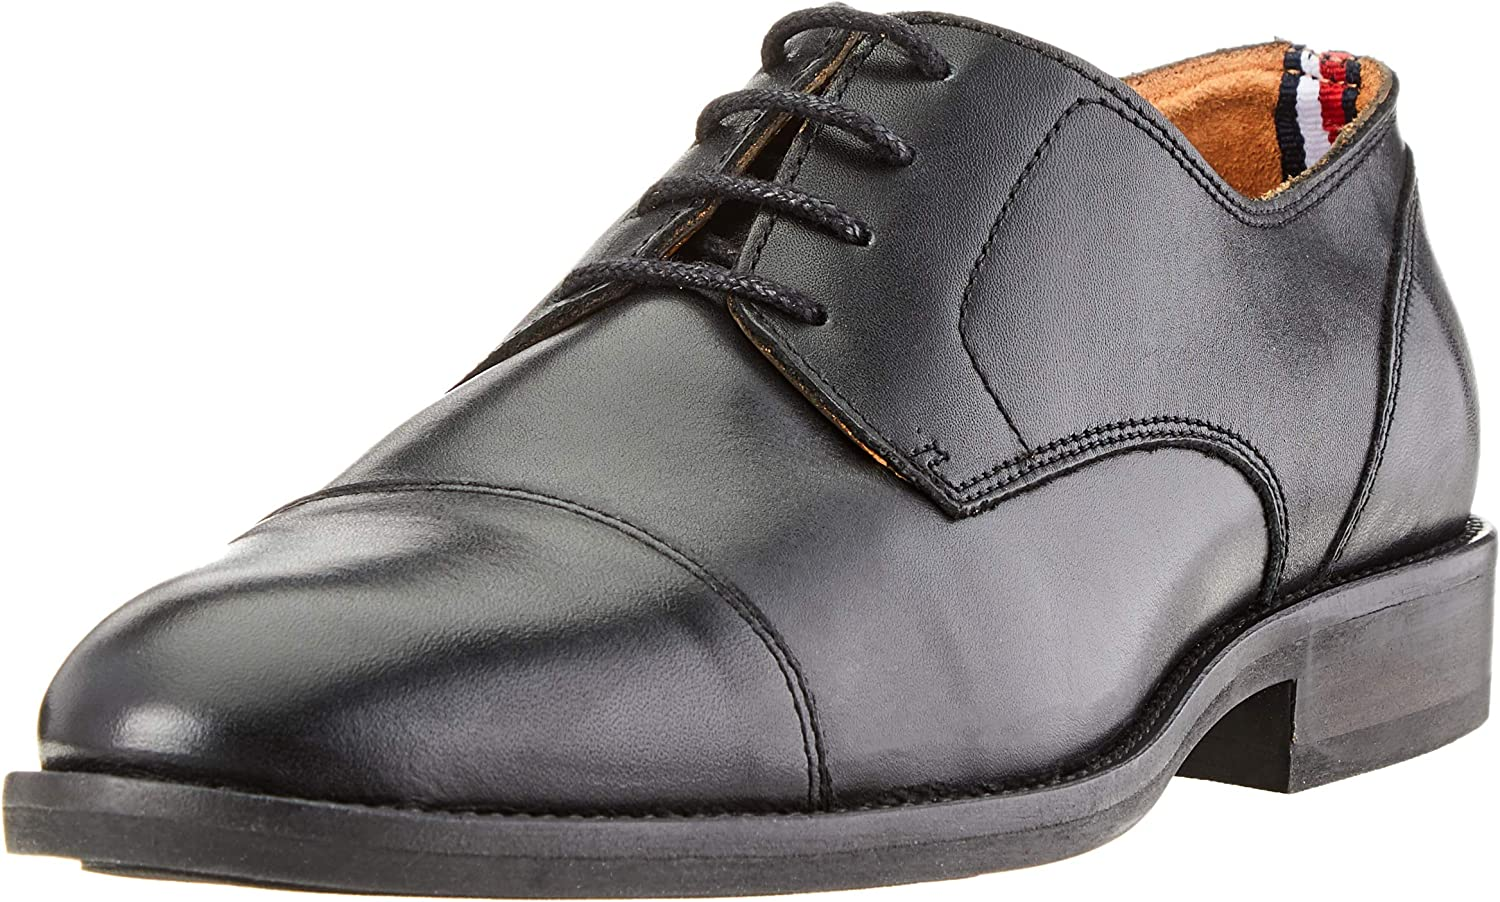 TALLA 42 EU. Tommy Hilfiger Essential Leather Toecap Lace Up, Zapatos de Cordones Oxford para Hombre